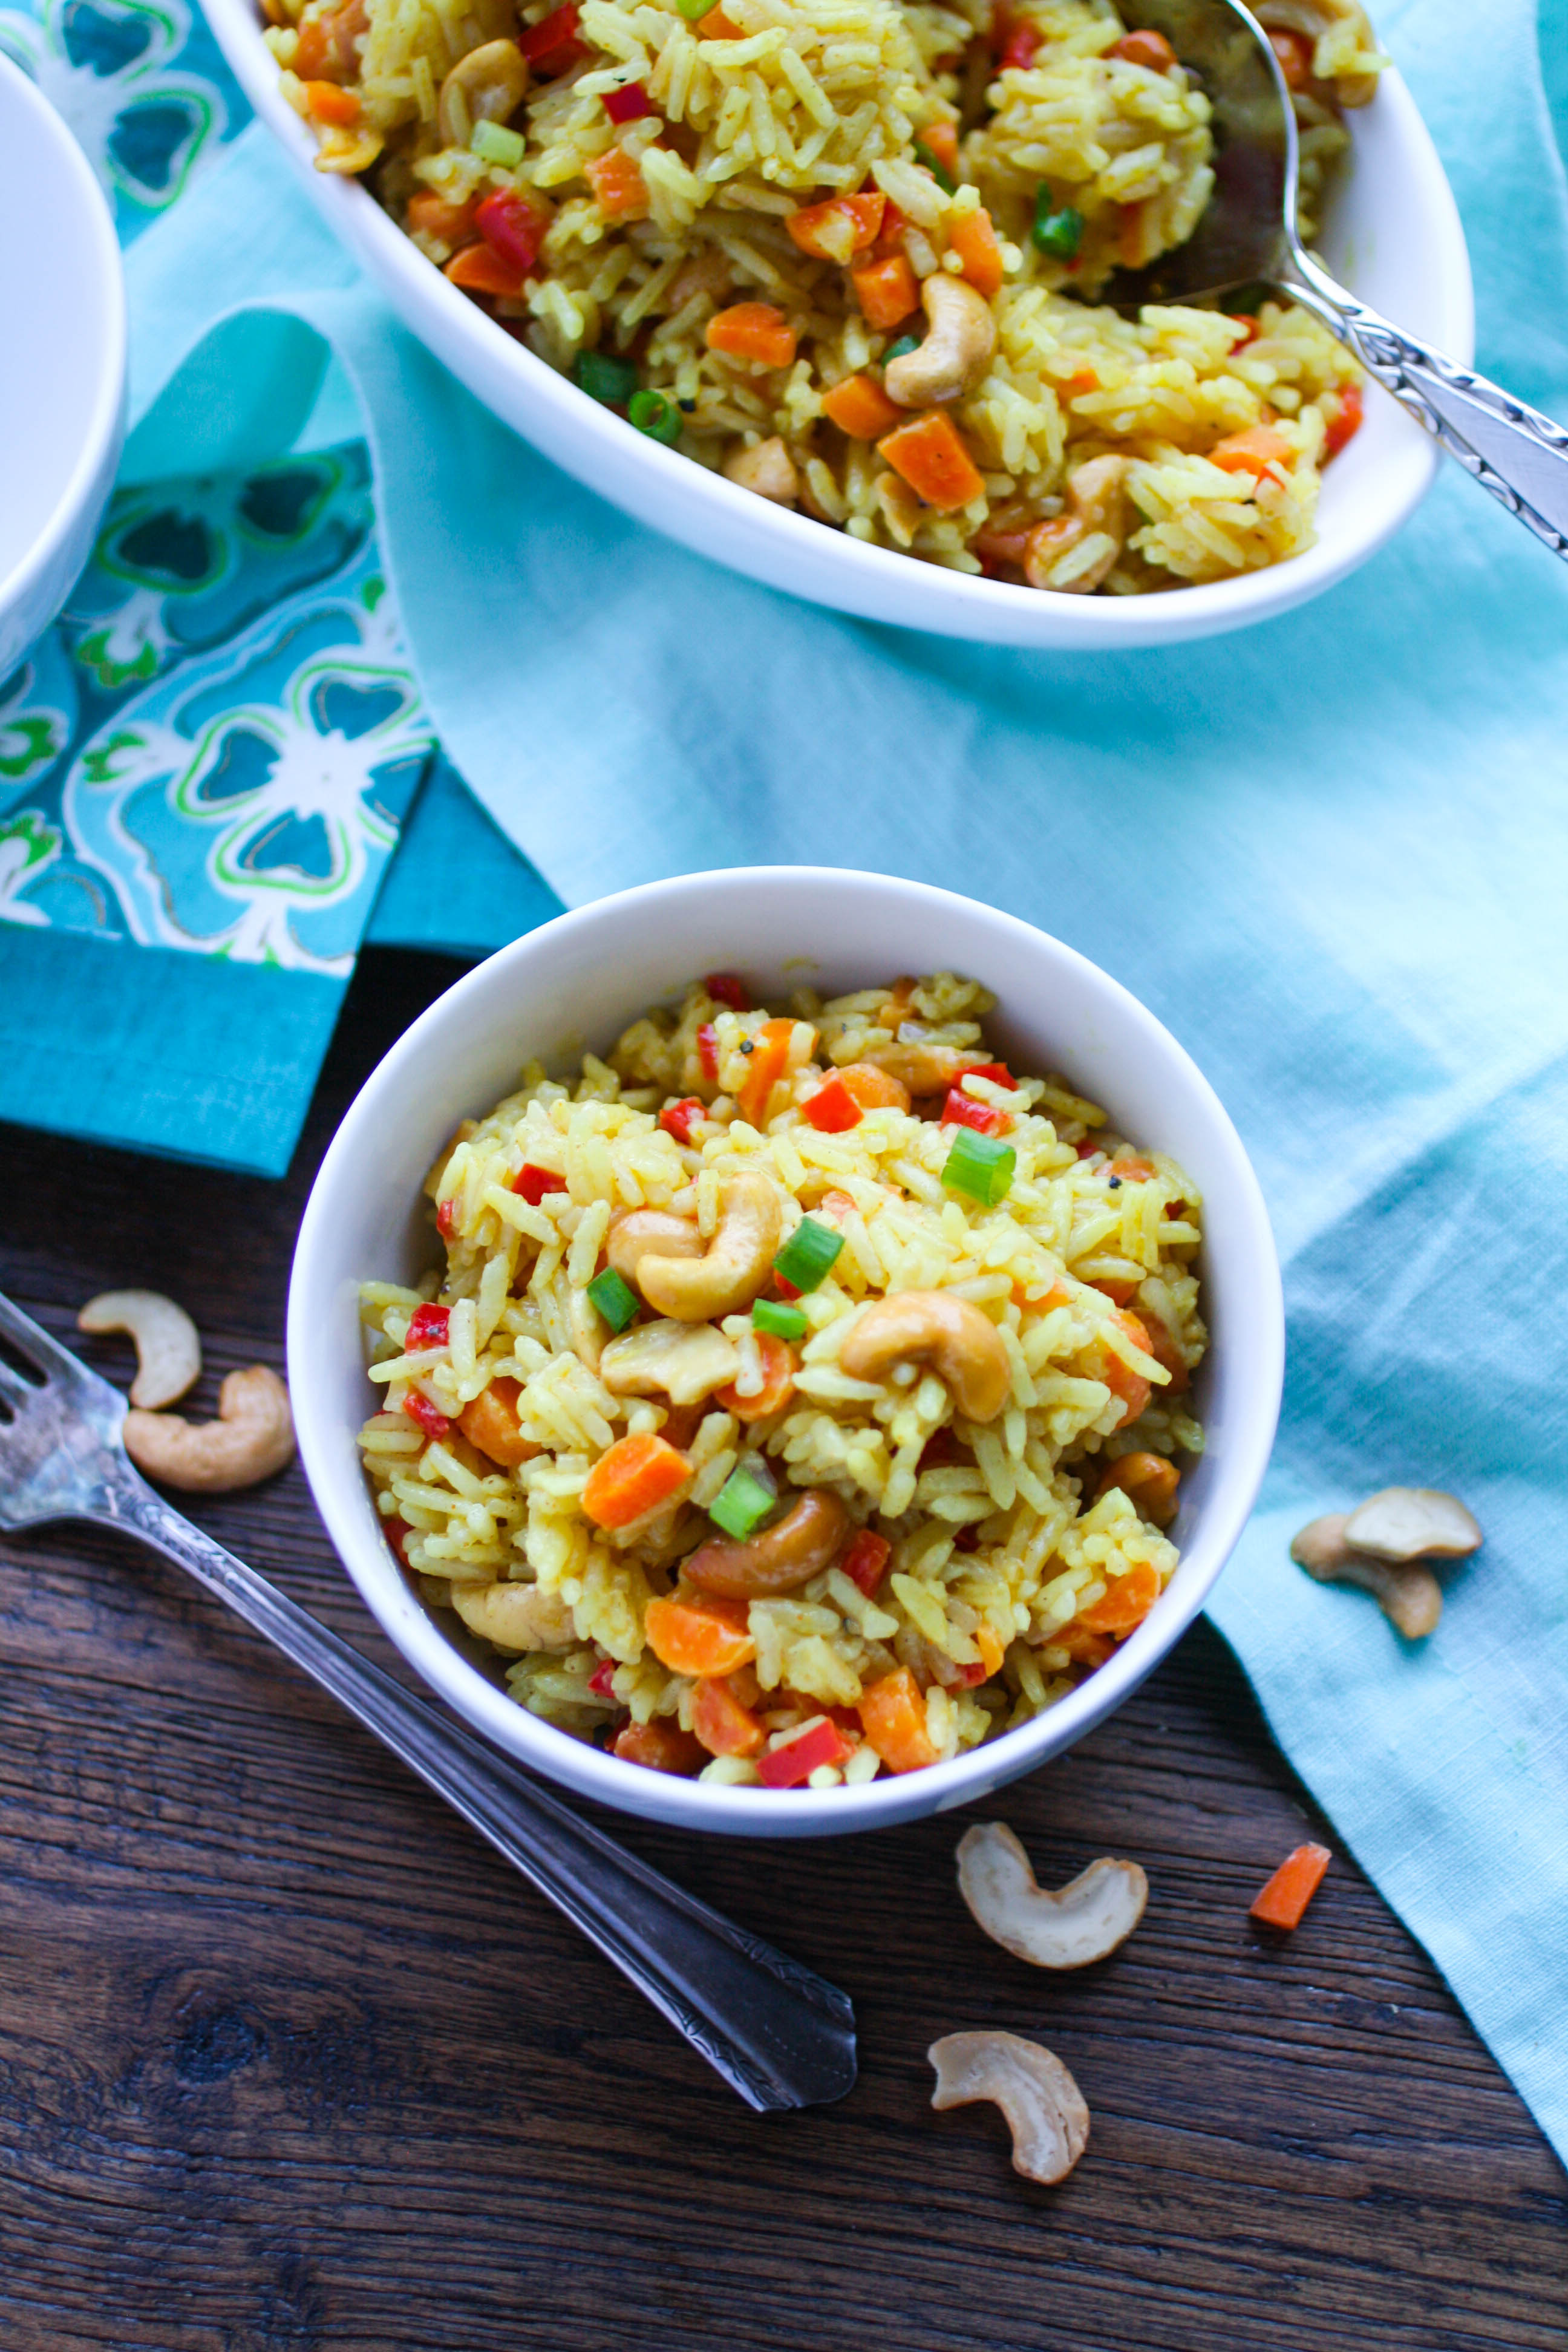 Coconut Carrot and Cashew Rice Pilaf is a colorful and flavorful side dish. This rice pilaf is so easy to make, and so delicious!